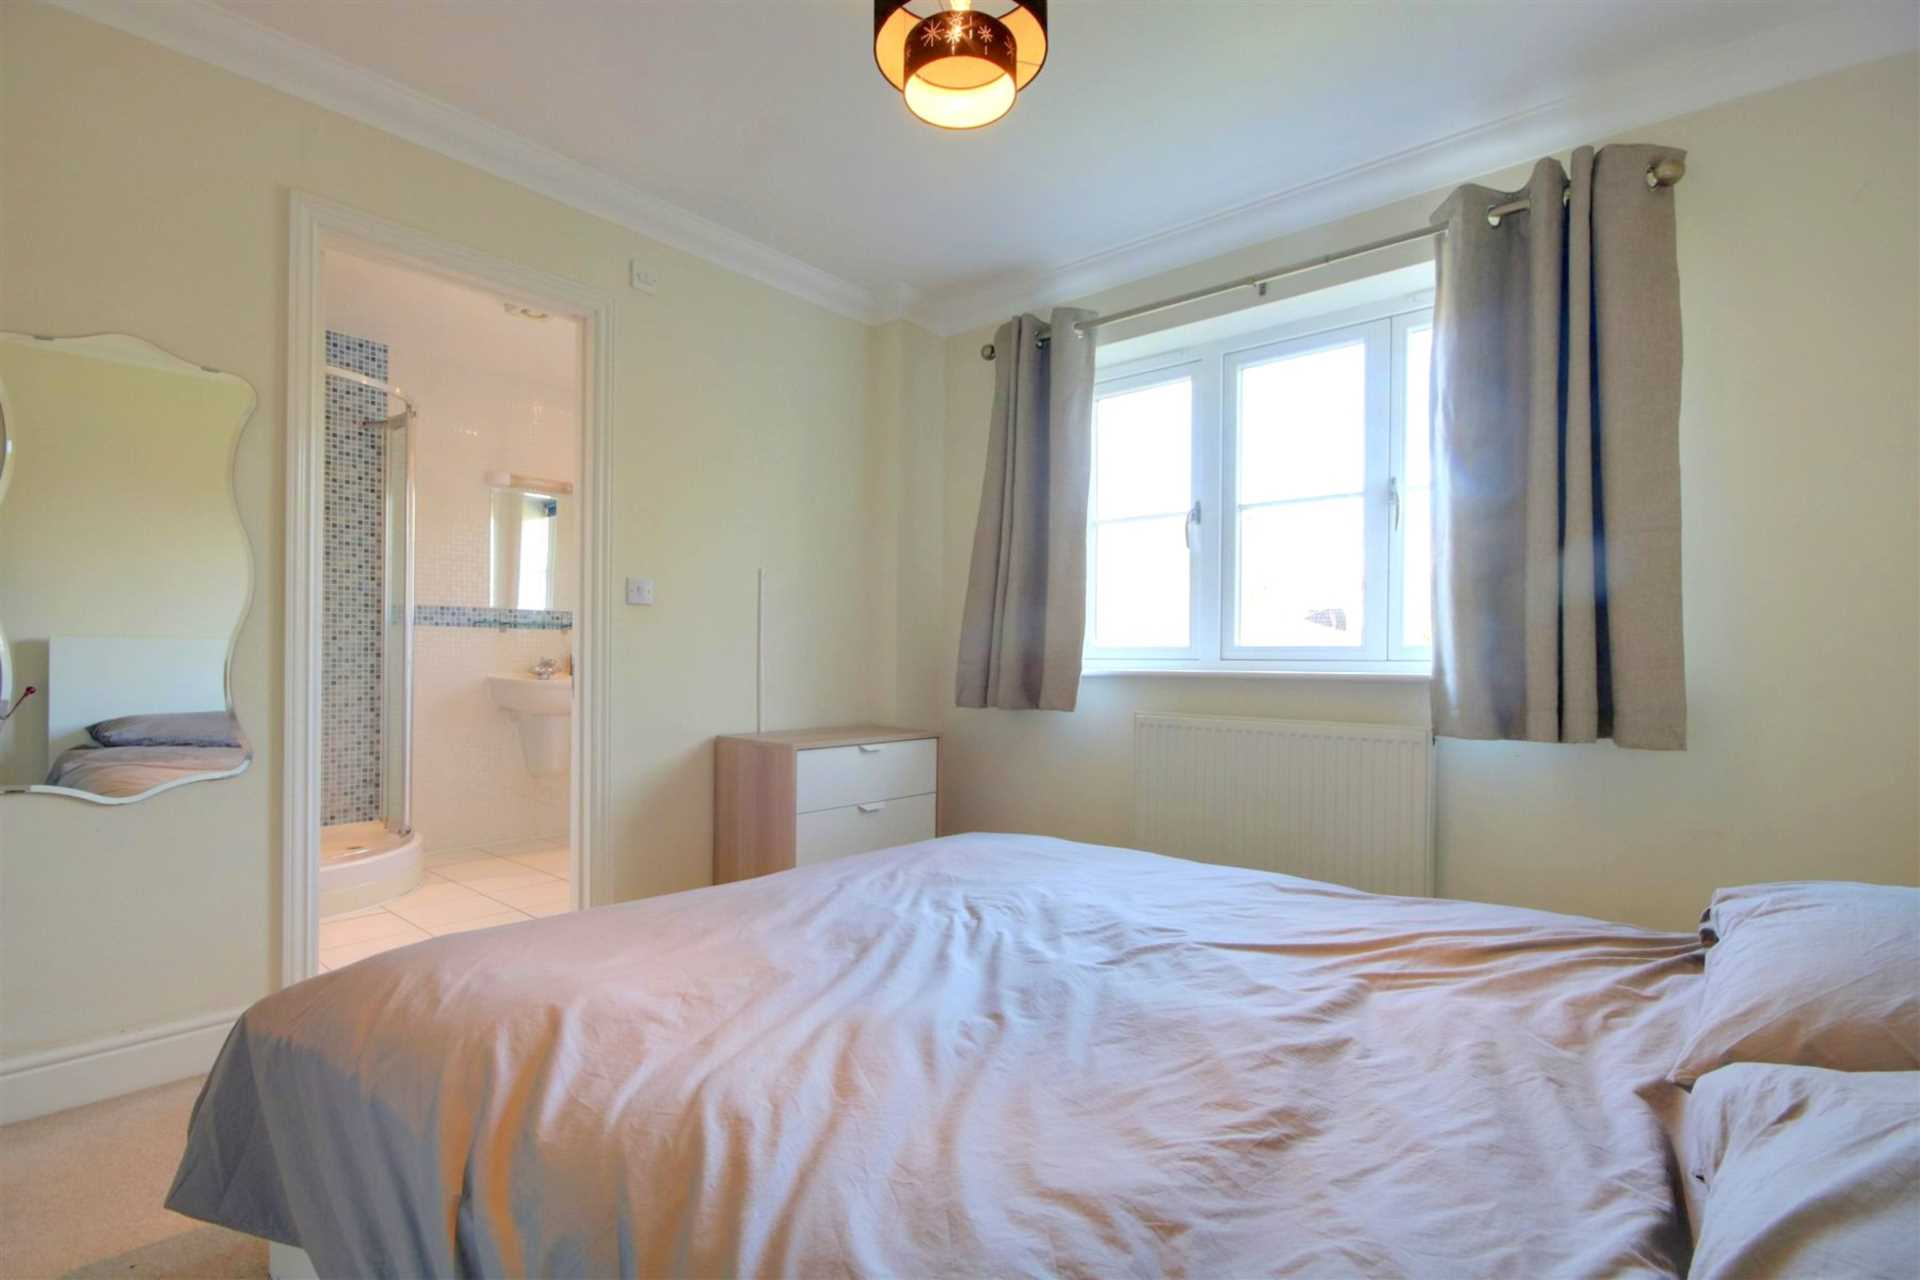 5 BED OFFERED FURNISHED & AVAILABLE June 2021, Image 9